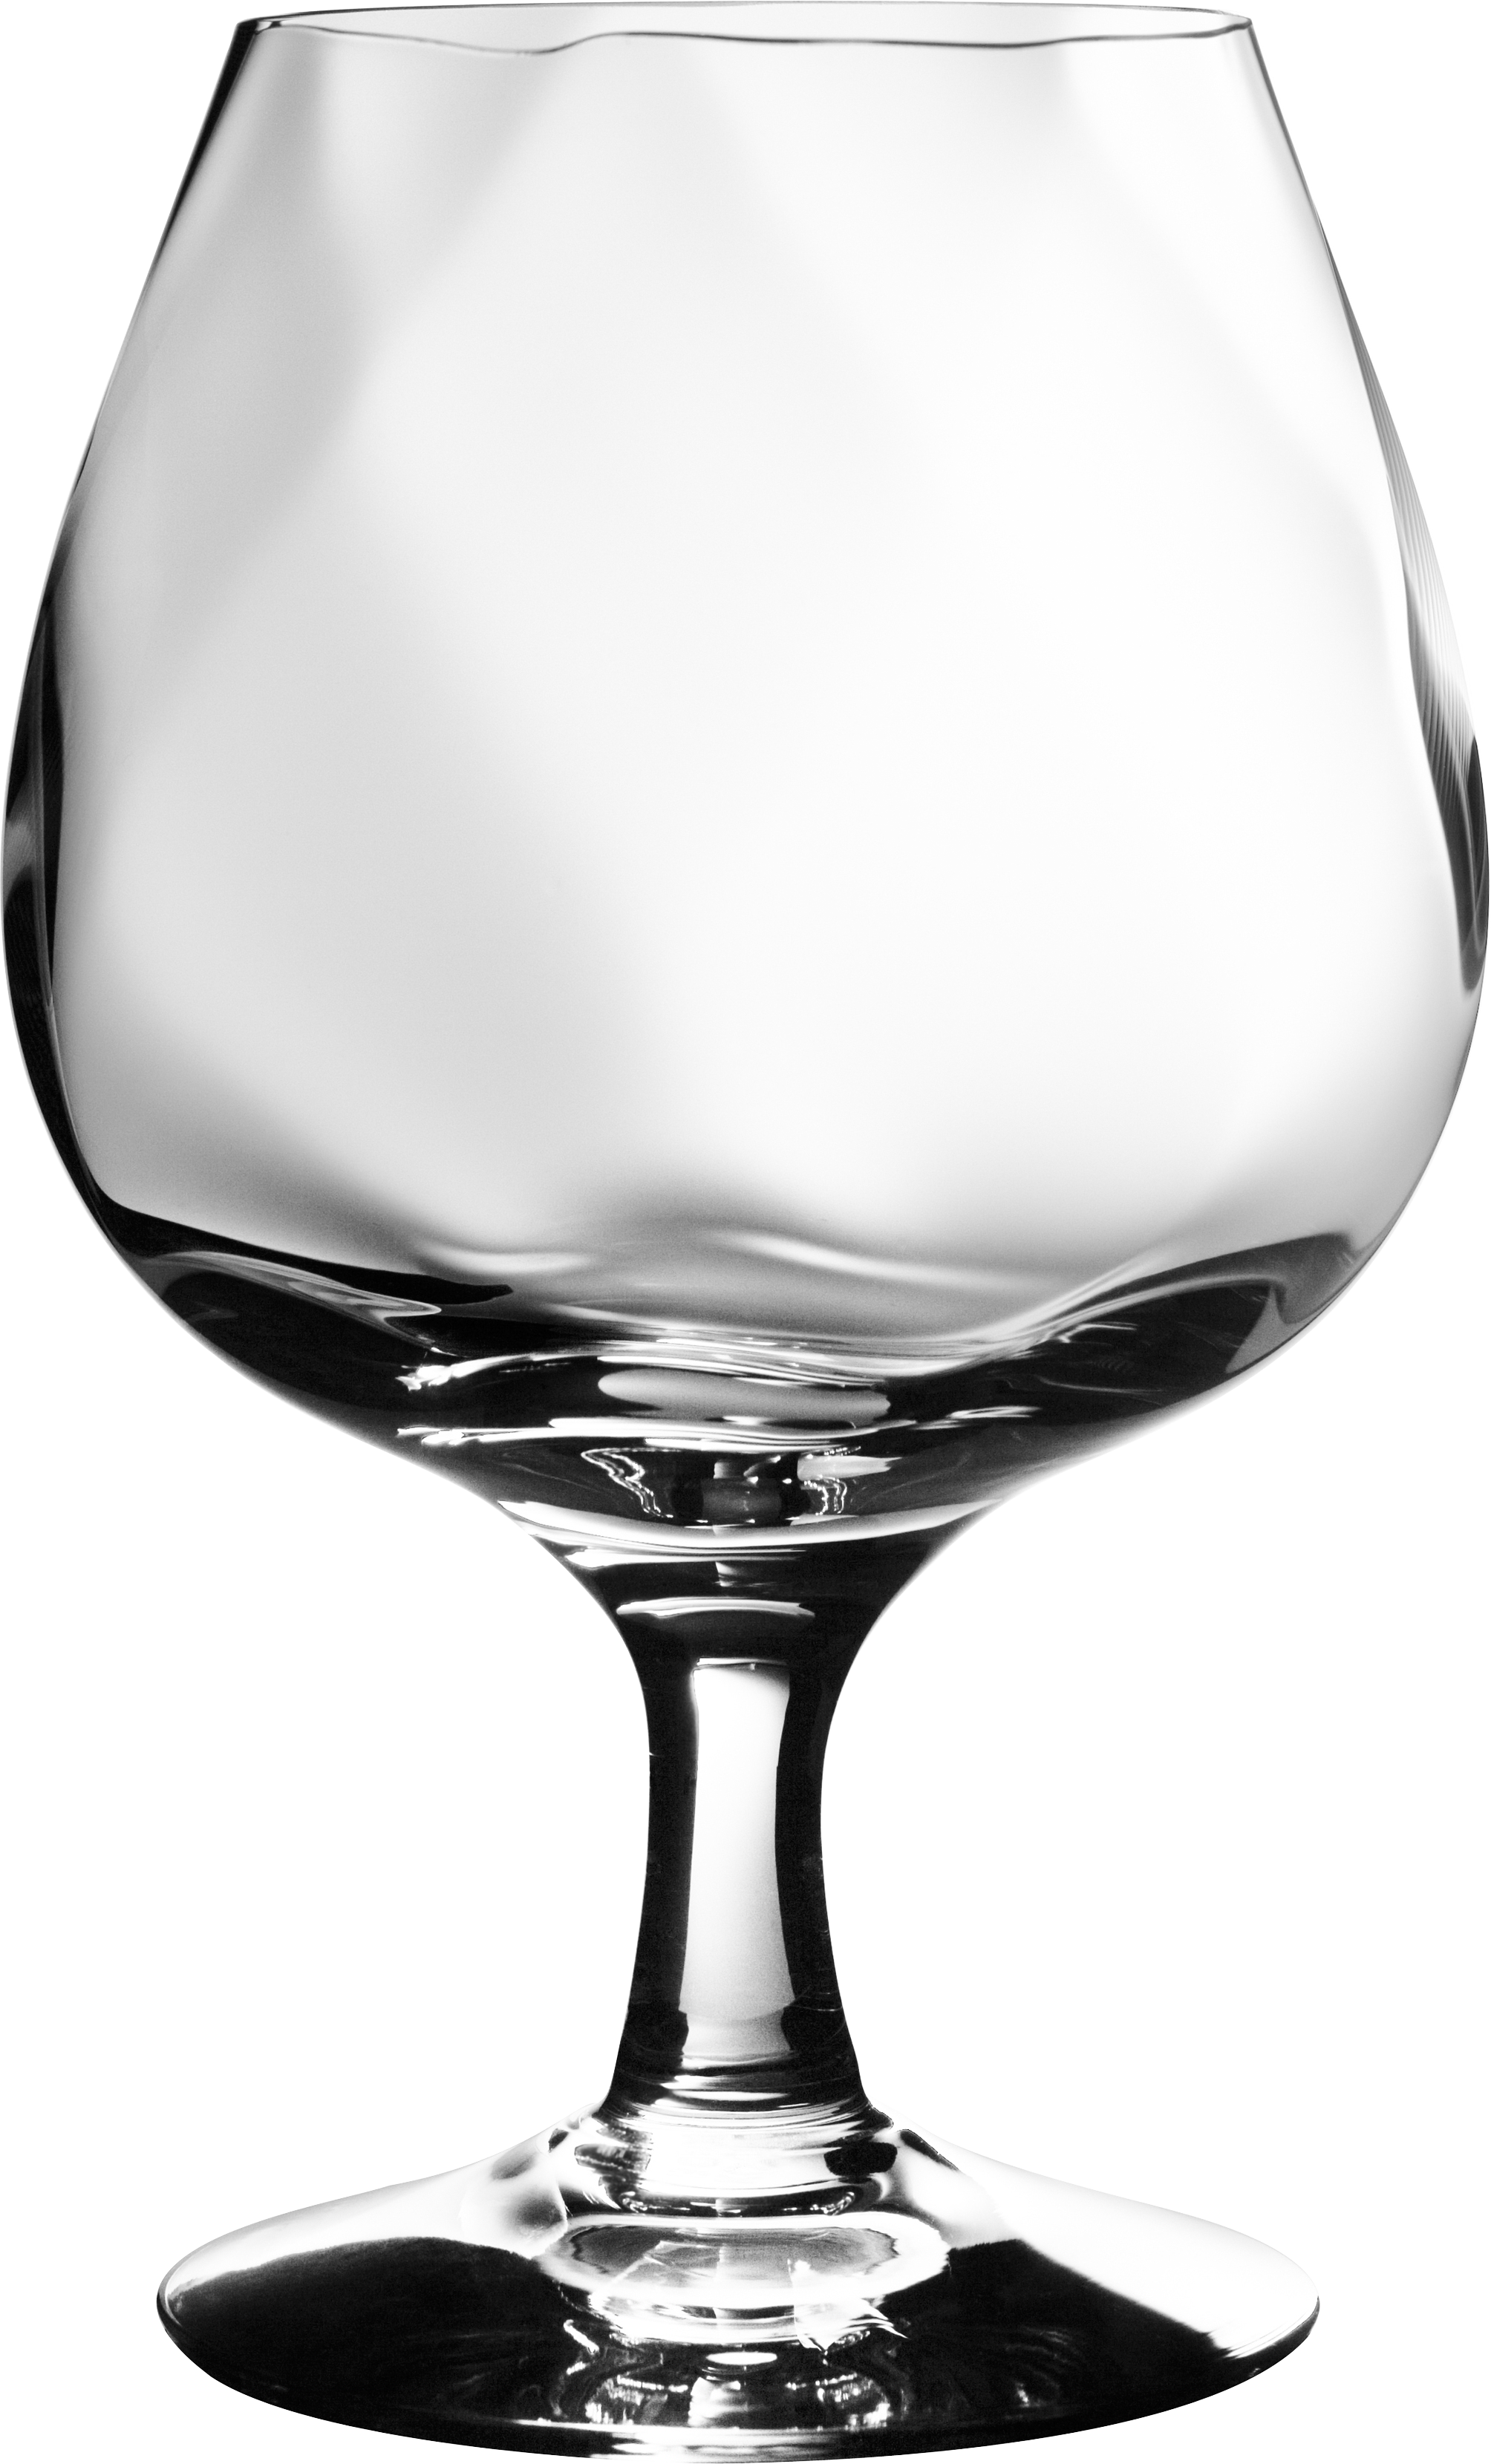 Drinking Glass Transparent Image PNG Image